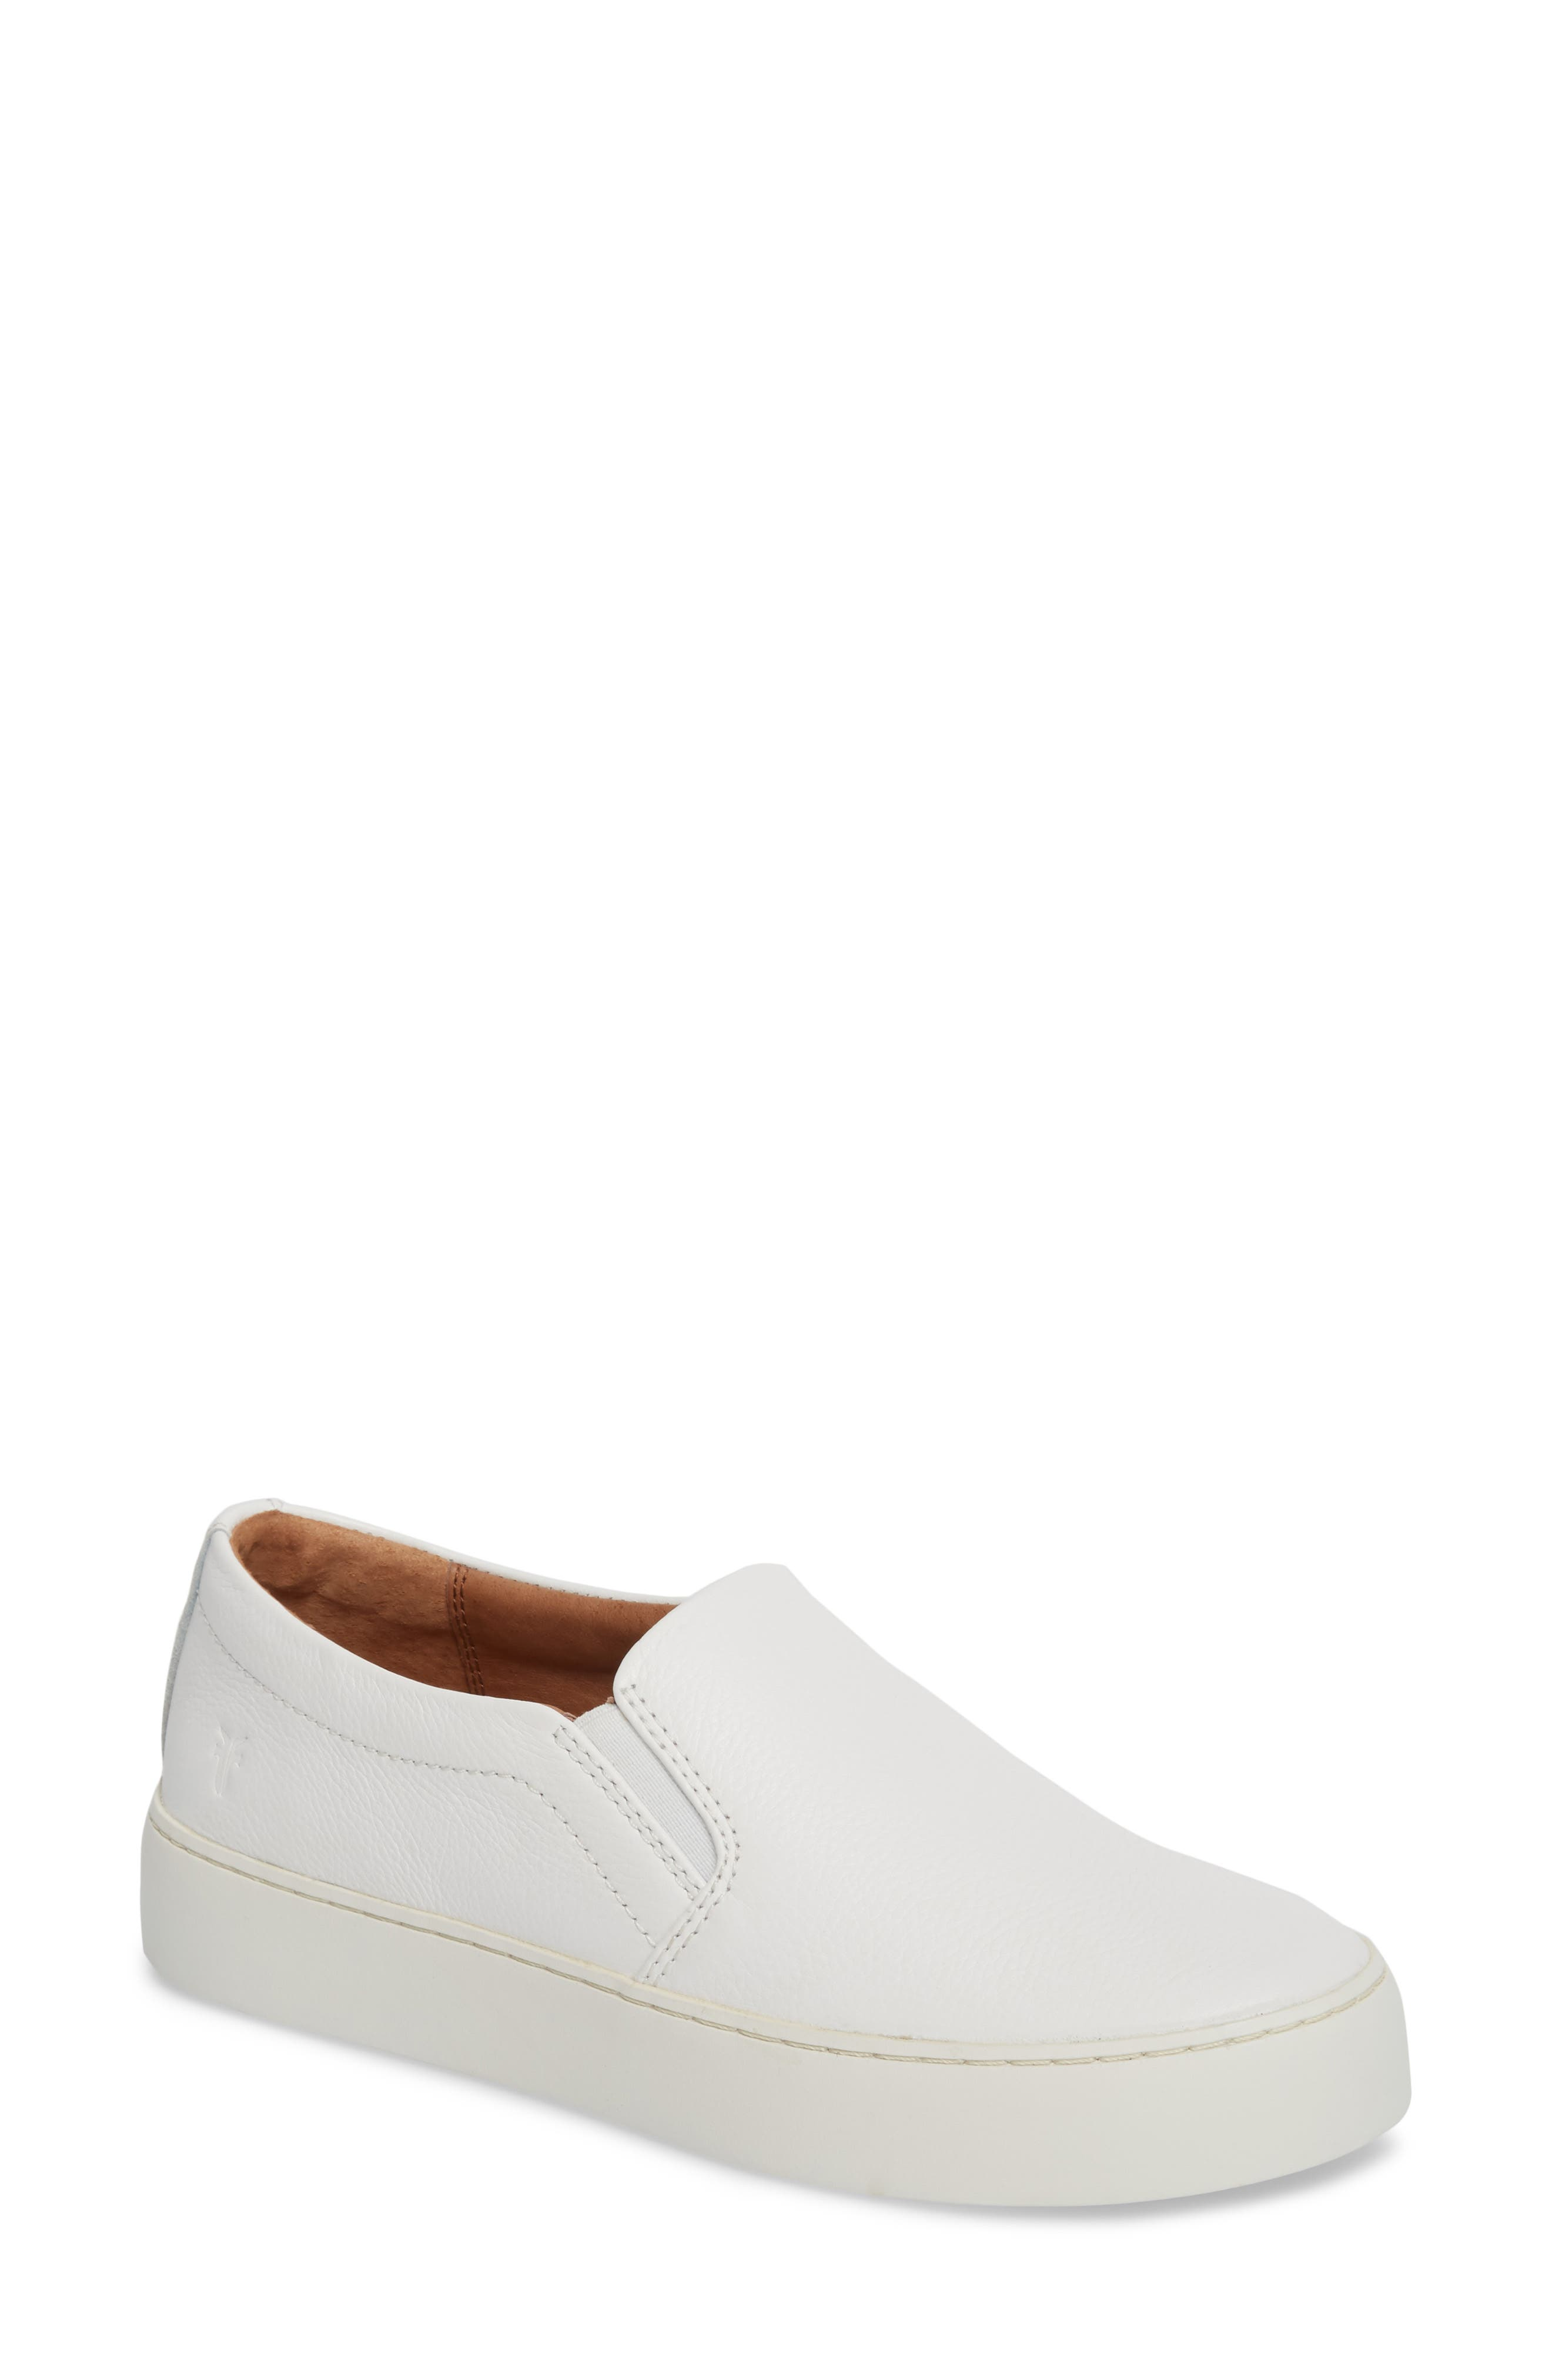 Lena Slip-On Sneaker,                             Main thumbnail 1, color,                             White Leather